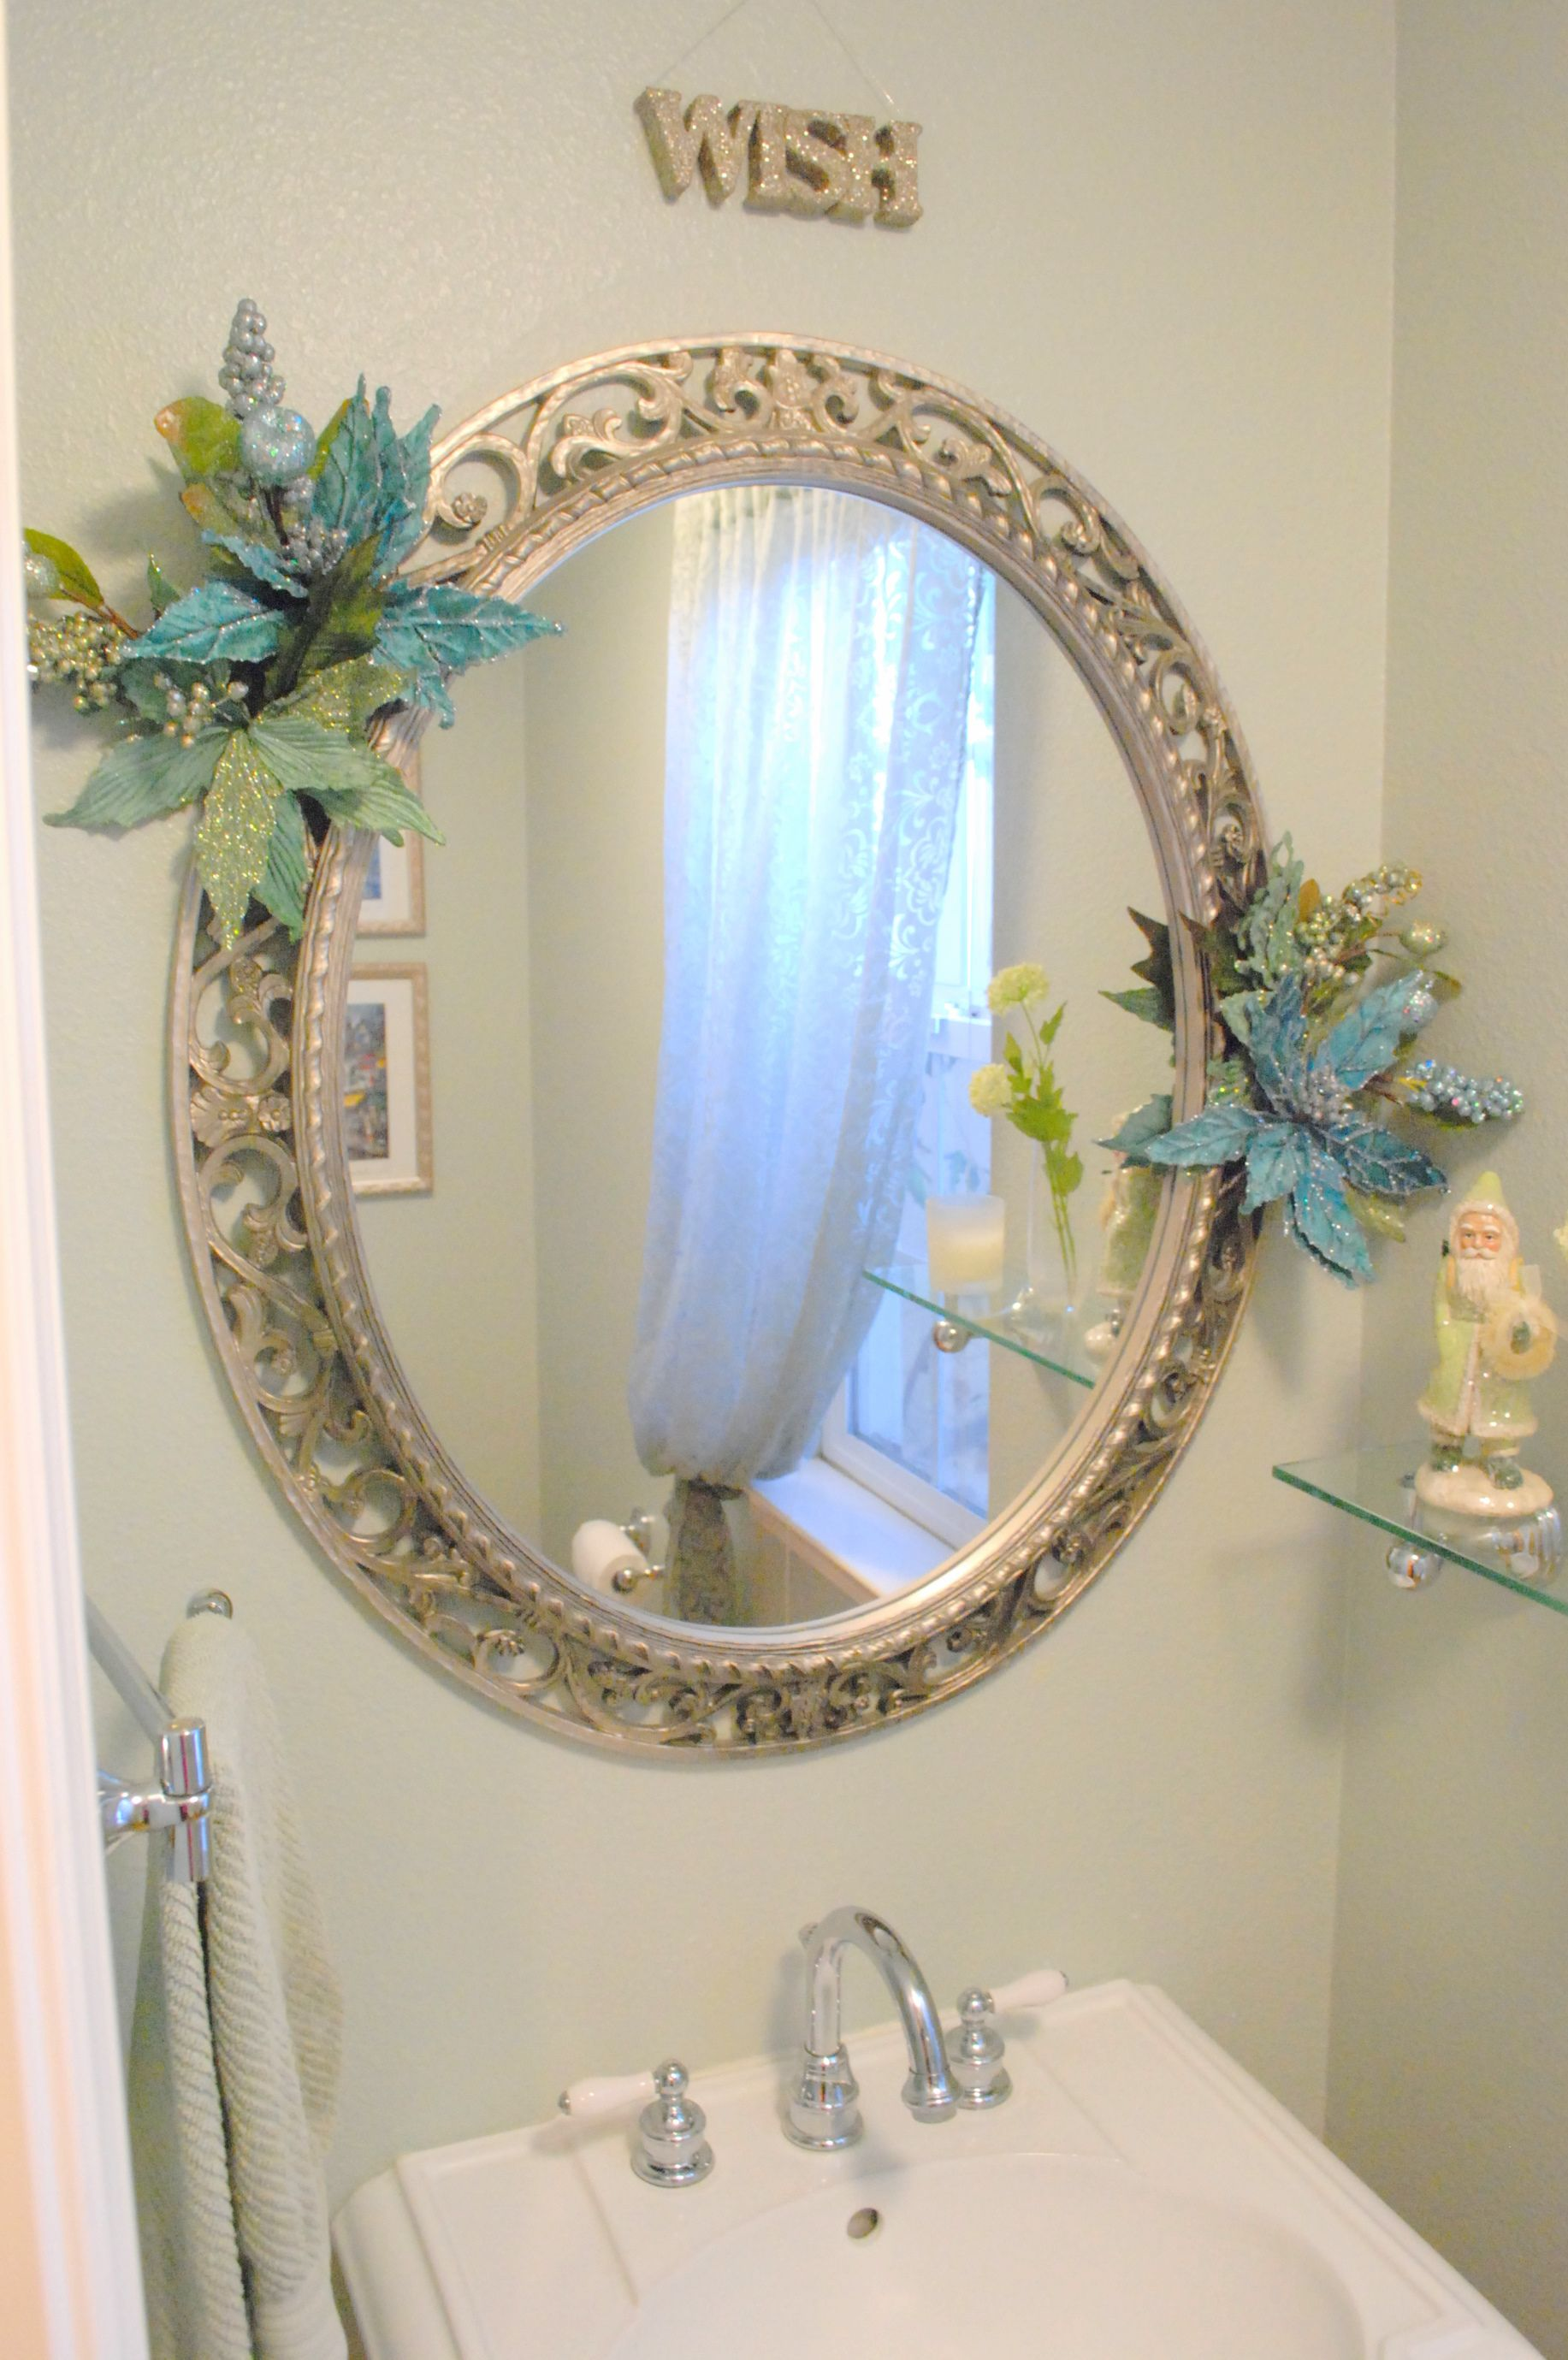 love, love, love the mirror!!! (not so much the holiday accents